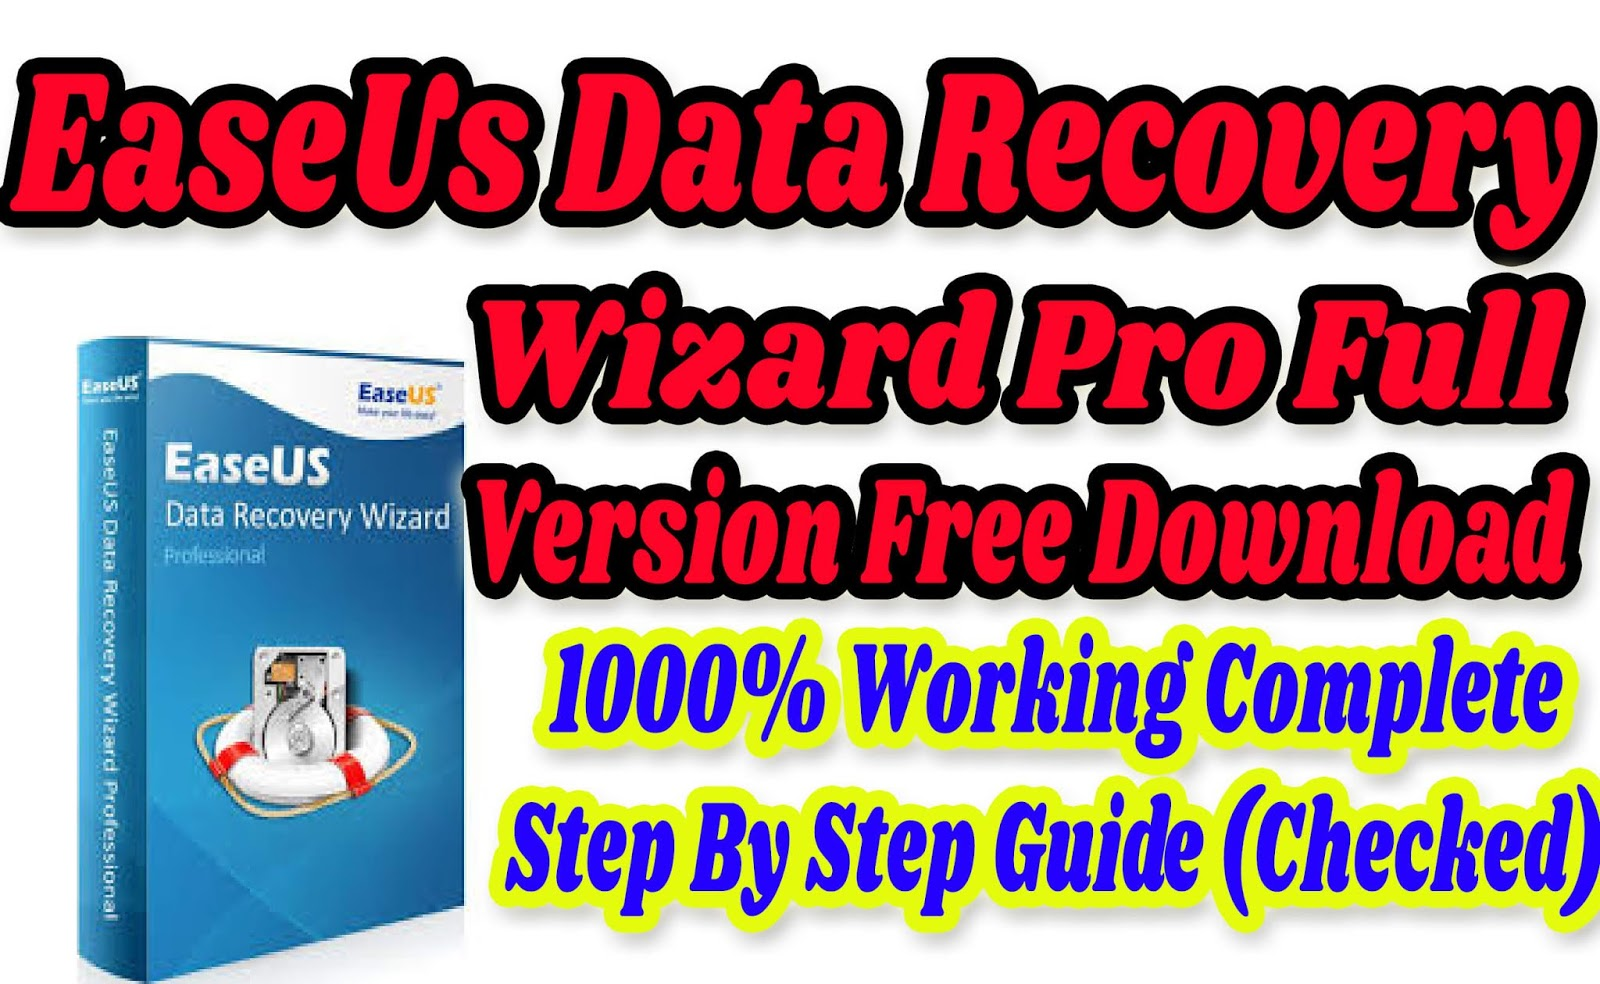 easeus data recovery wizard 12.0.0 license key